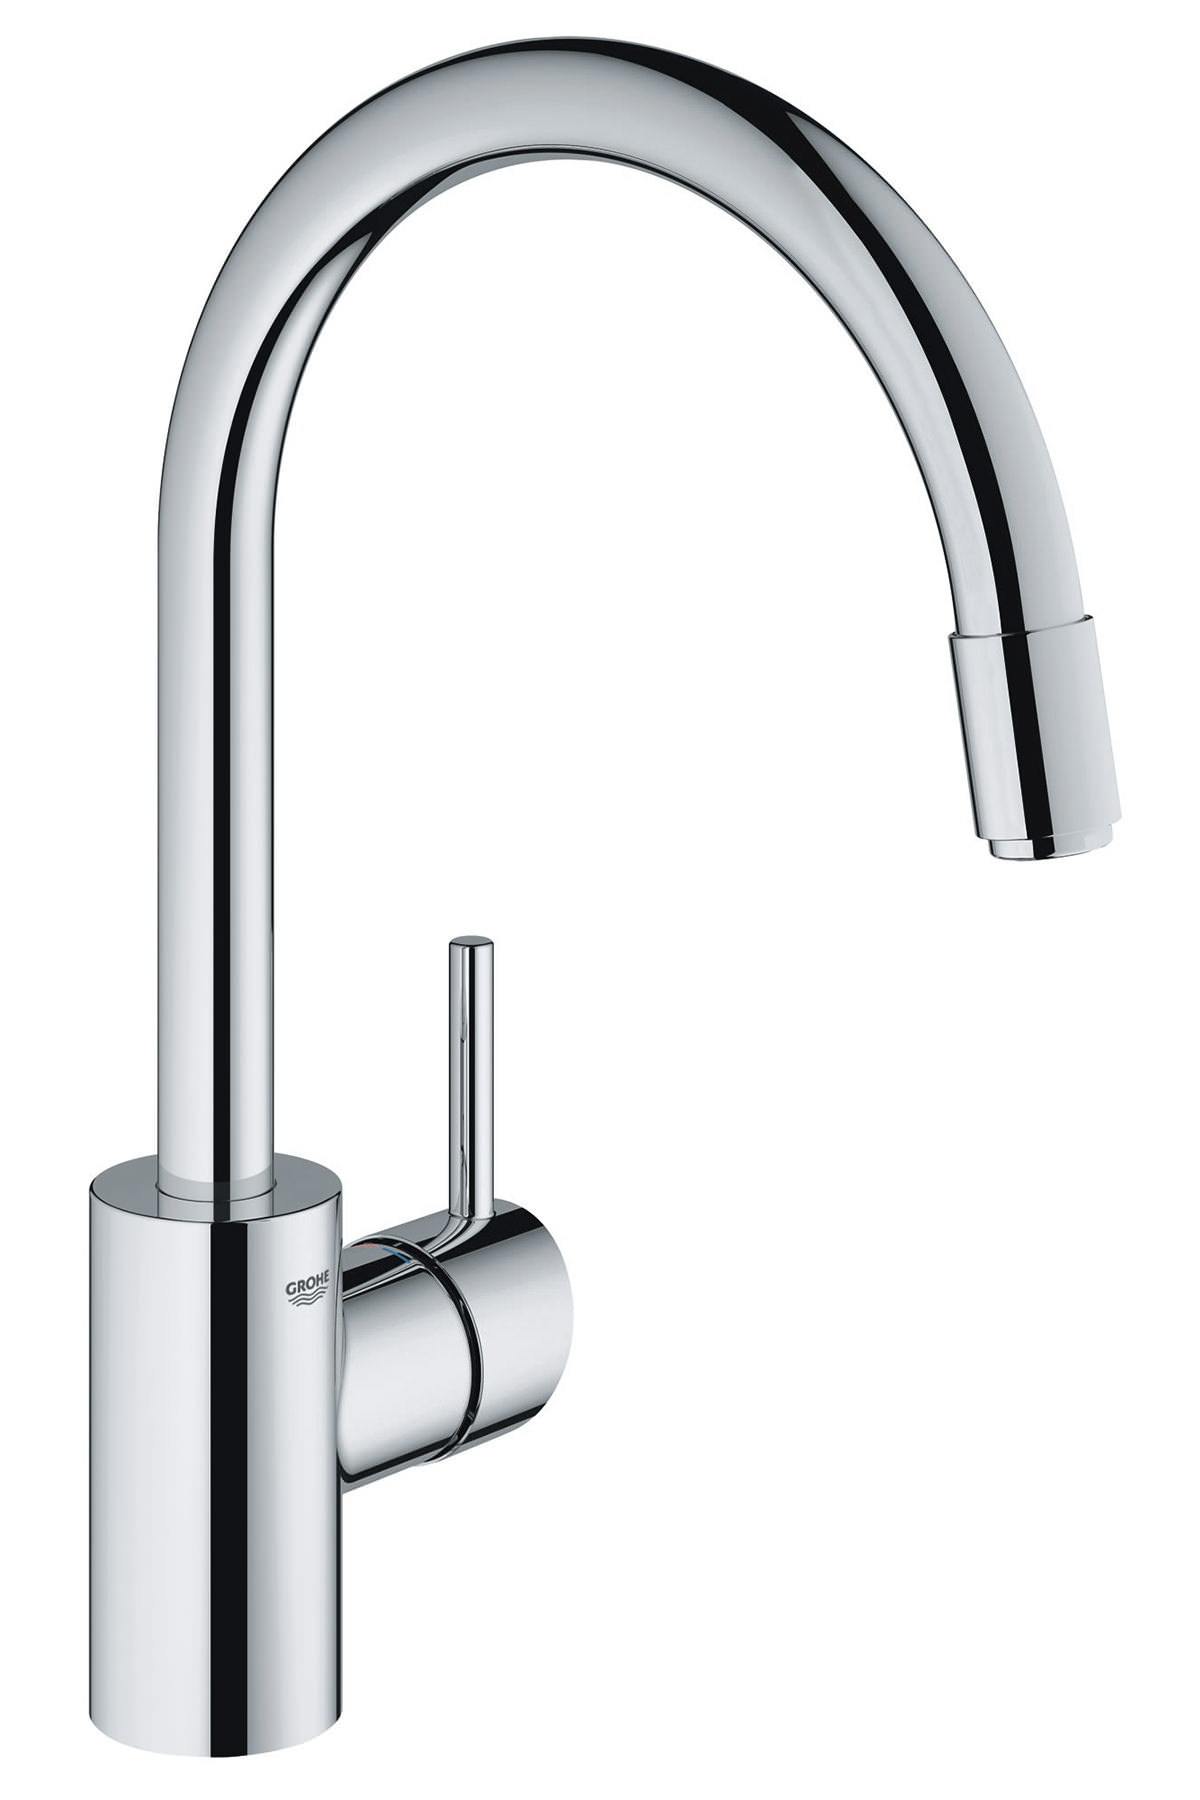 grohe concetto chrome monobloc sink mixer tap 32 663 001. Black Bedroom Furniture Sets. Home Design Ideas